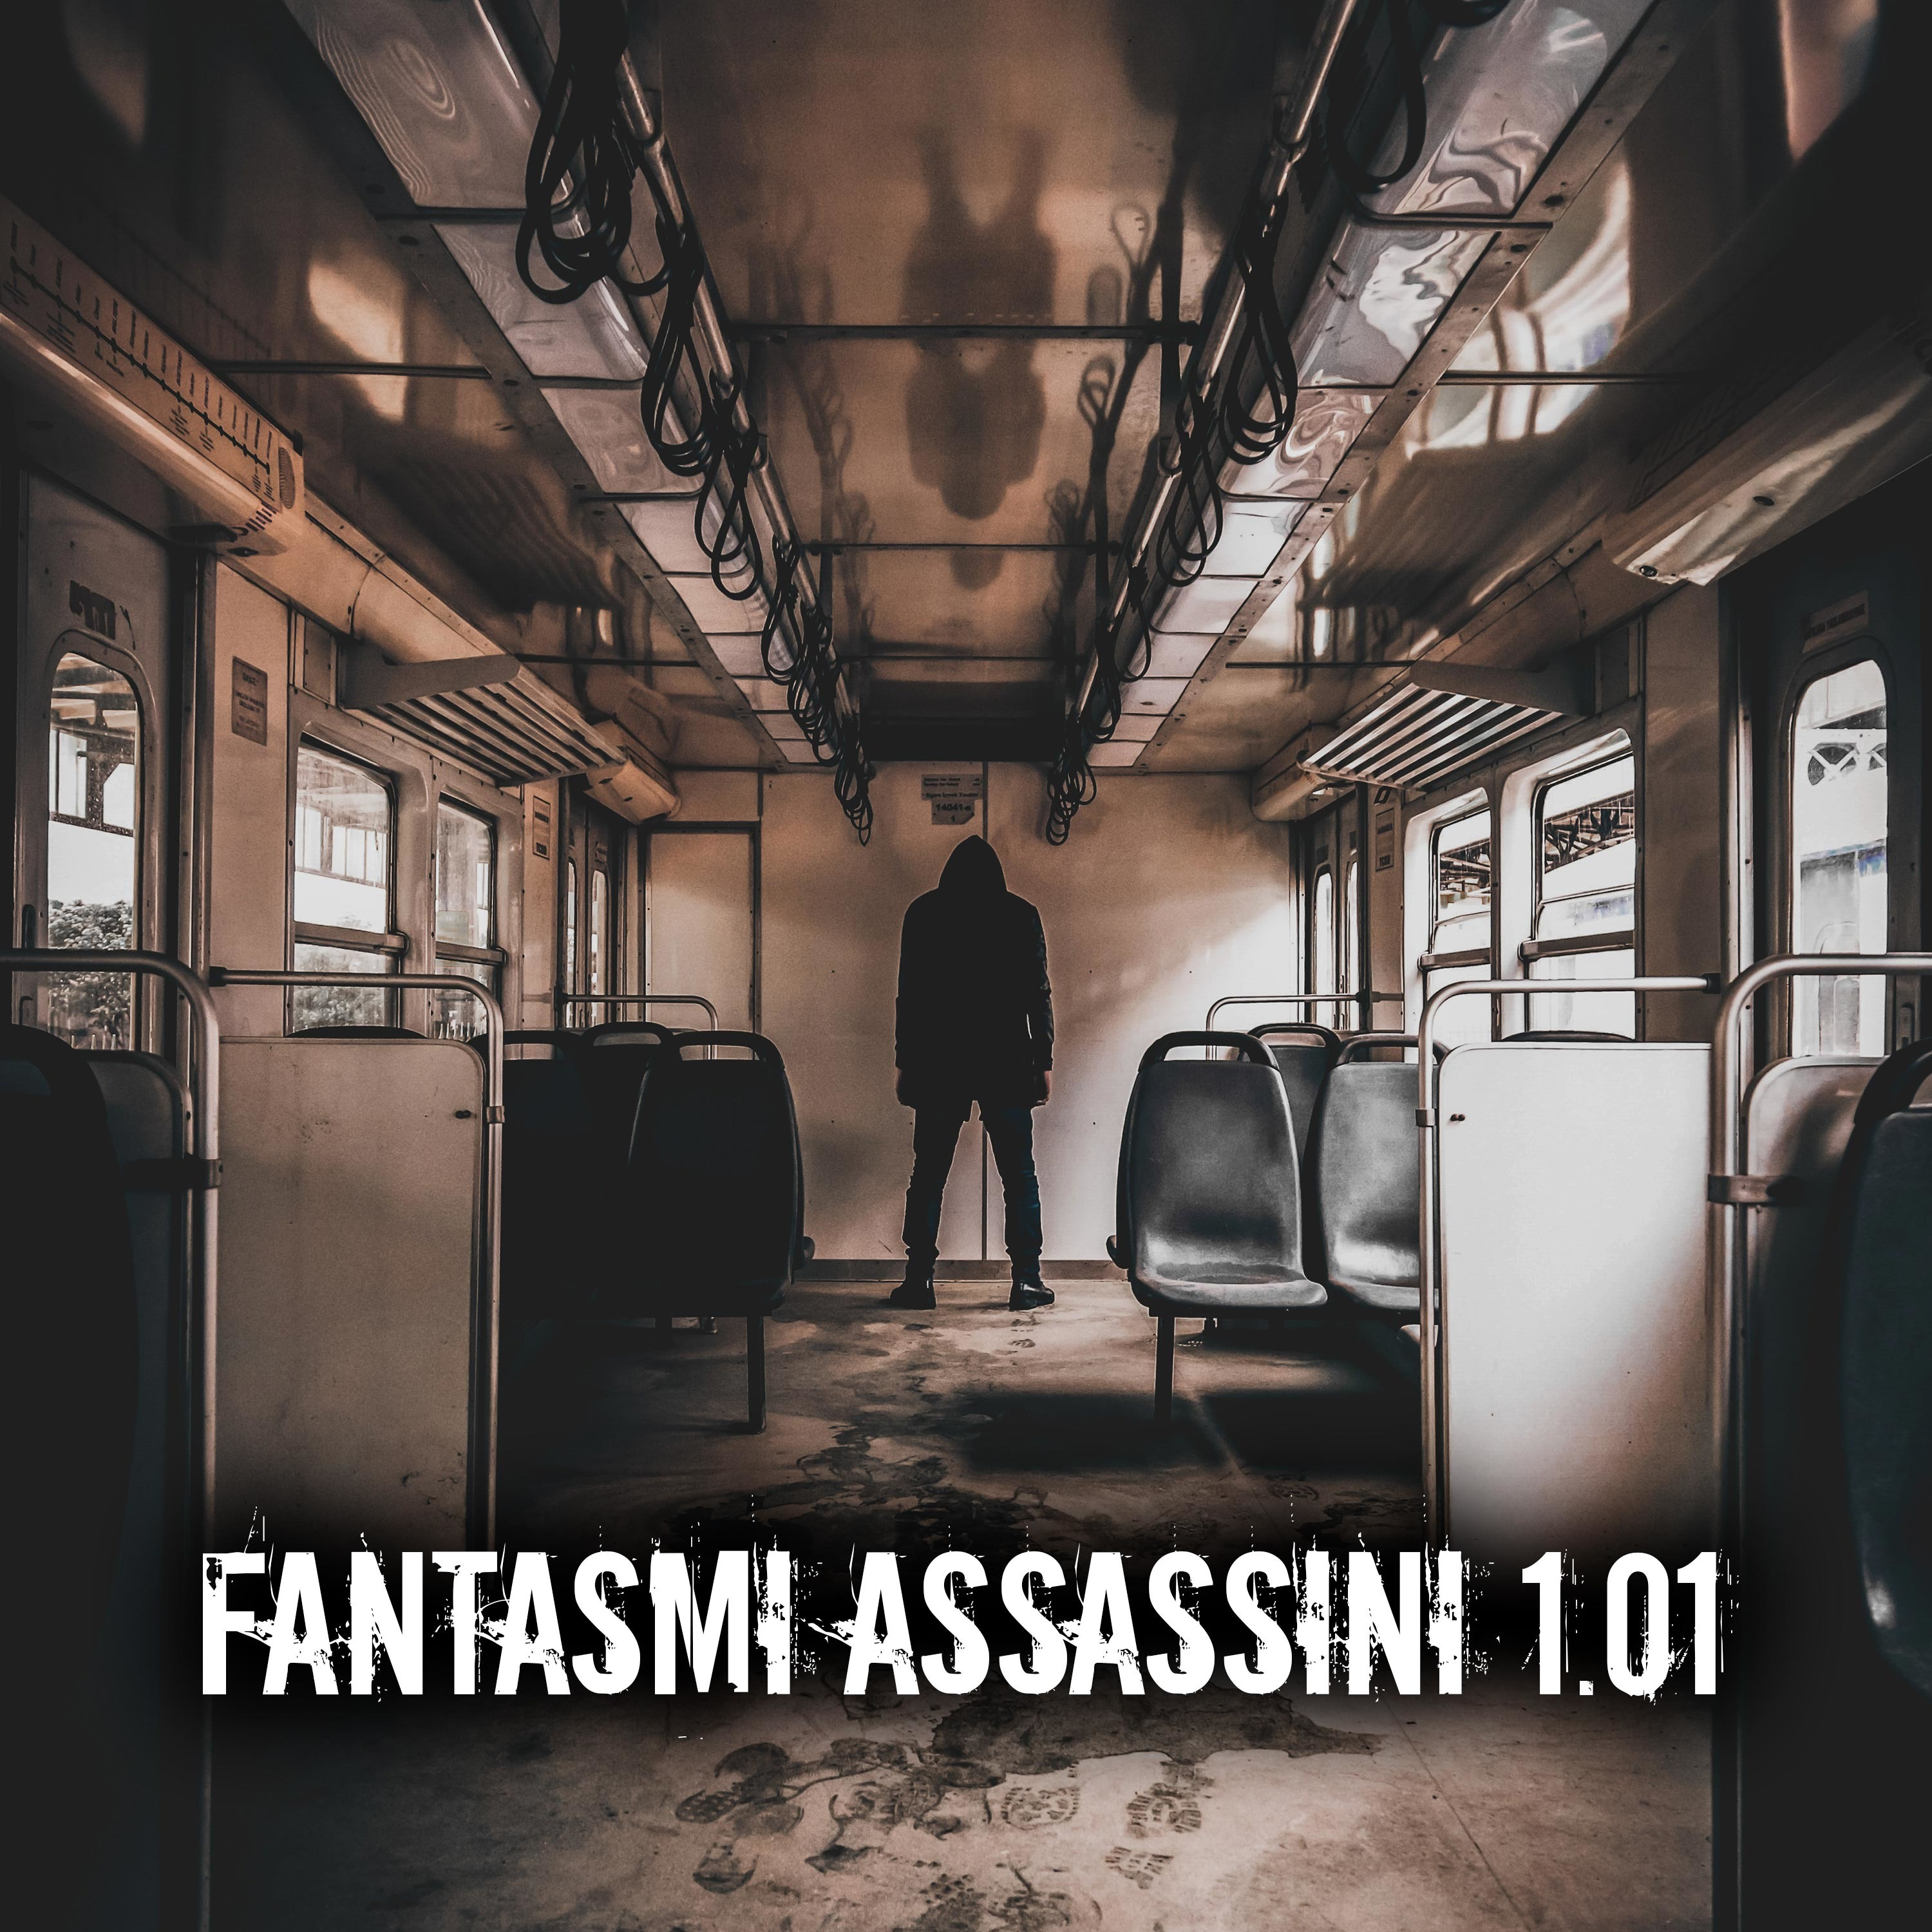 Fantasmi assassini 1.01